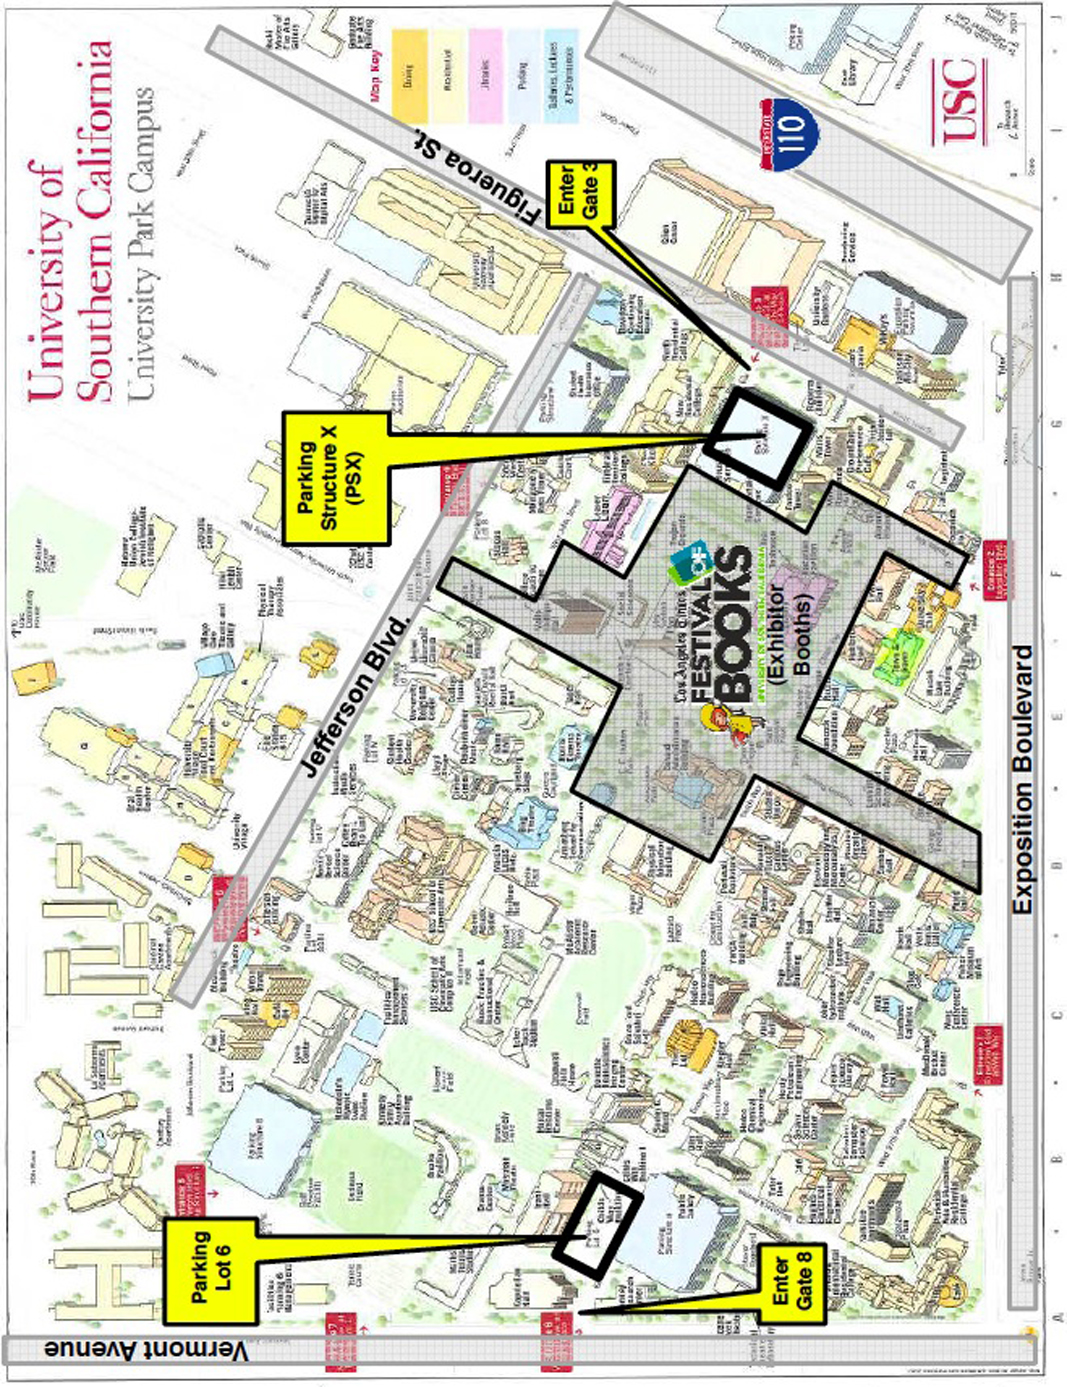 glaws  the los angeles times festival of books map - usc entire campus line art showing parking Â«Â«